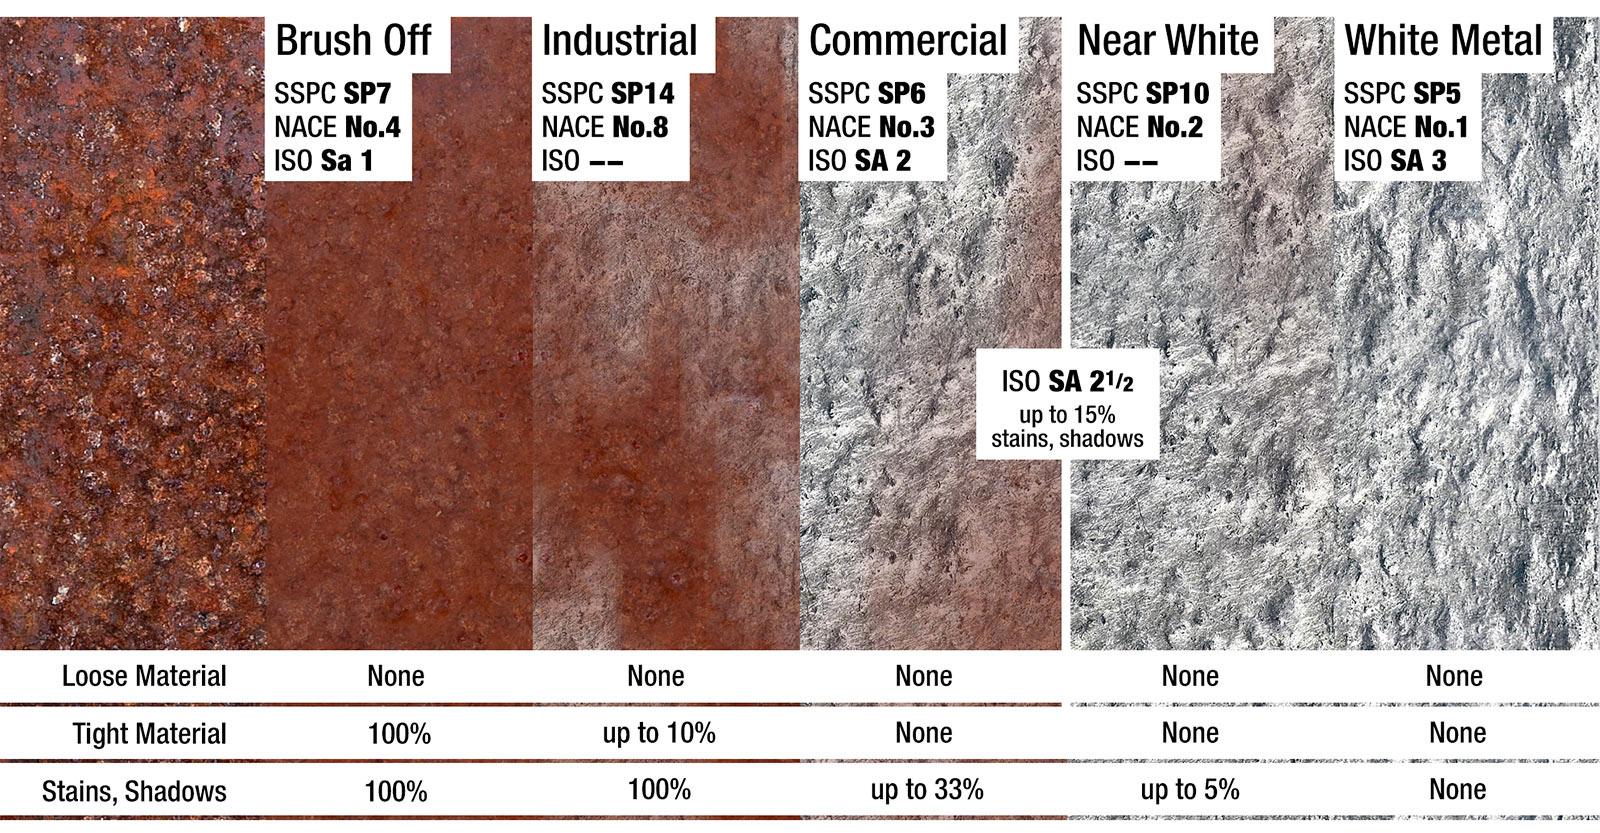 Comparing Surface Prep Standards Sspc Nace And Iso 8501